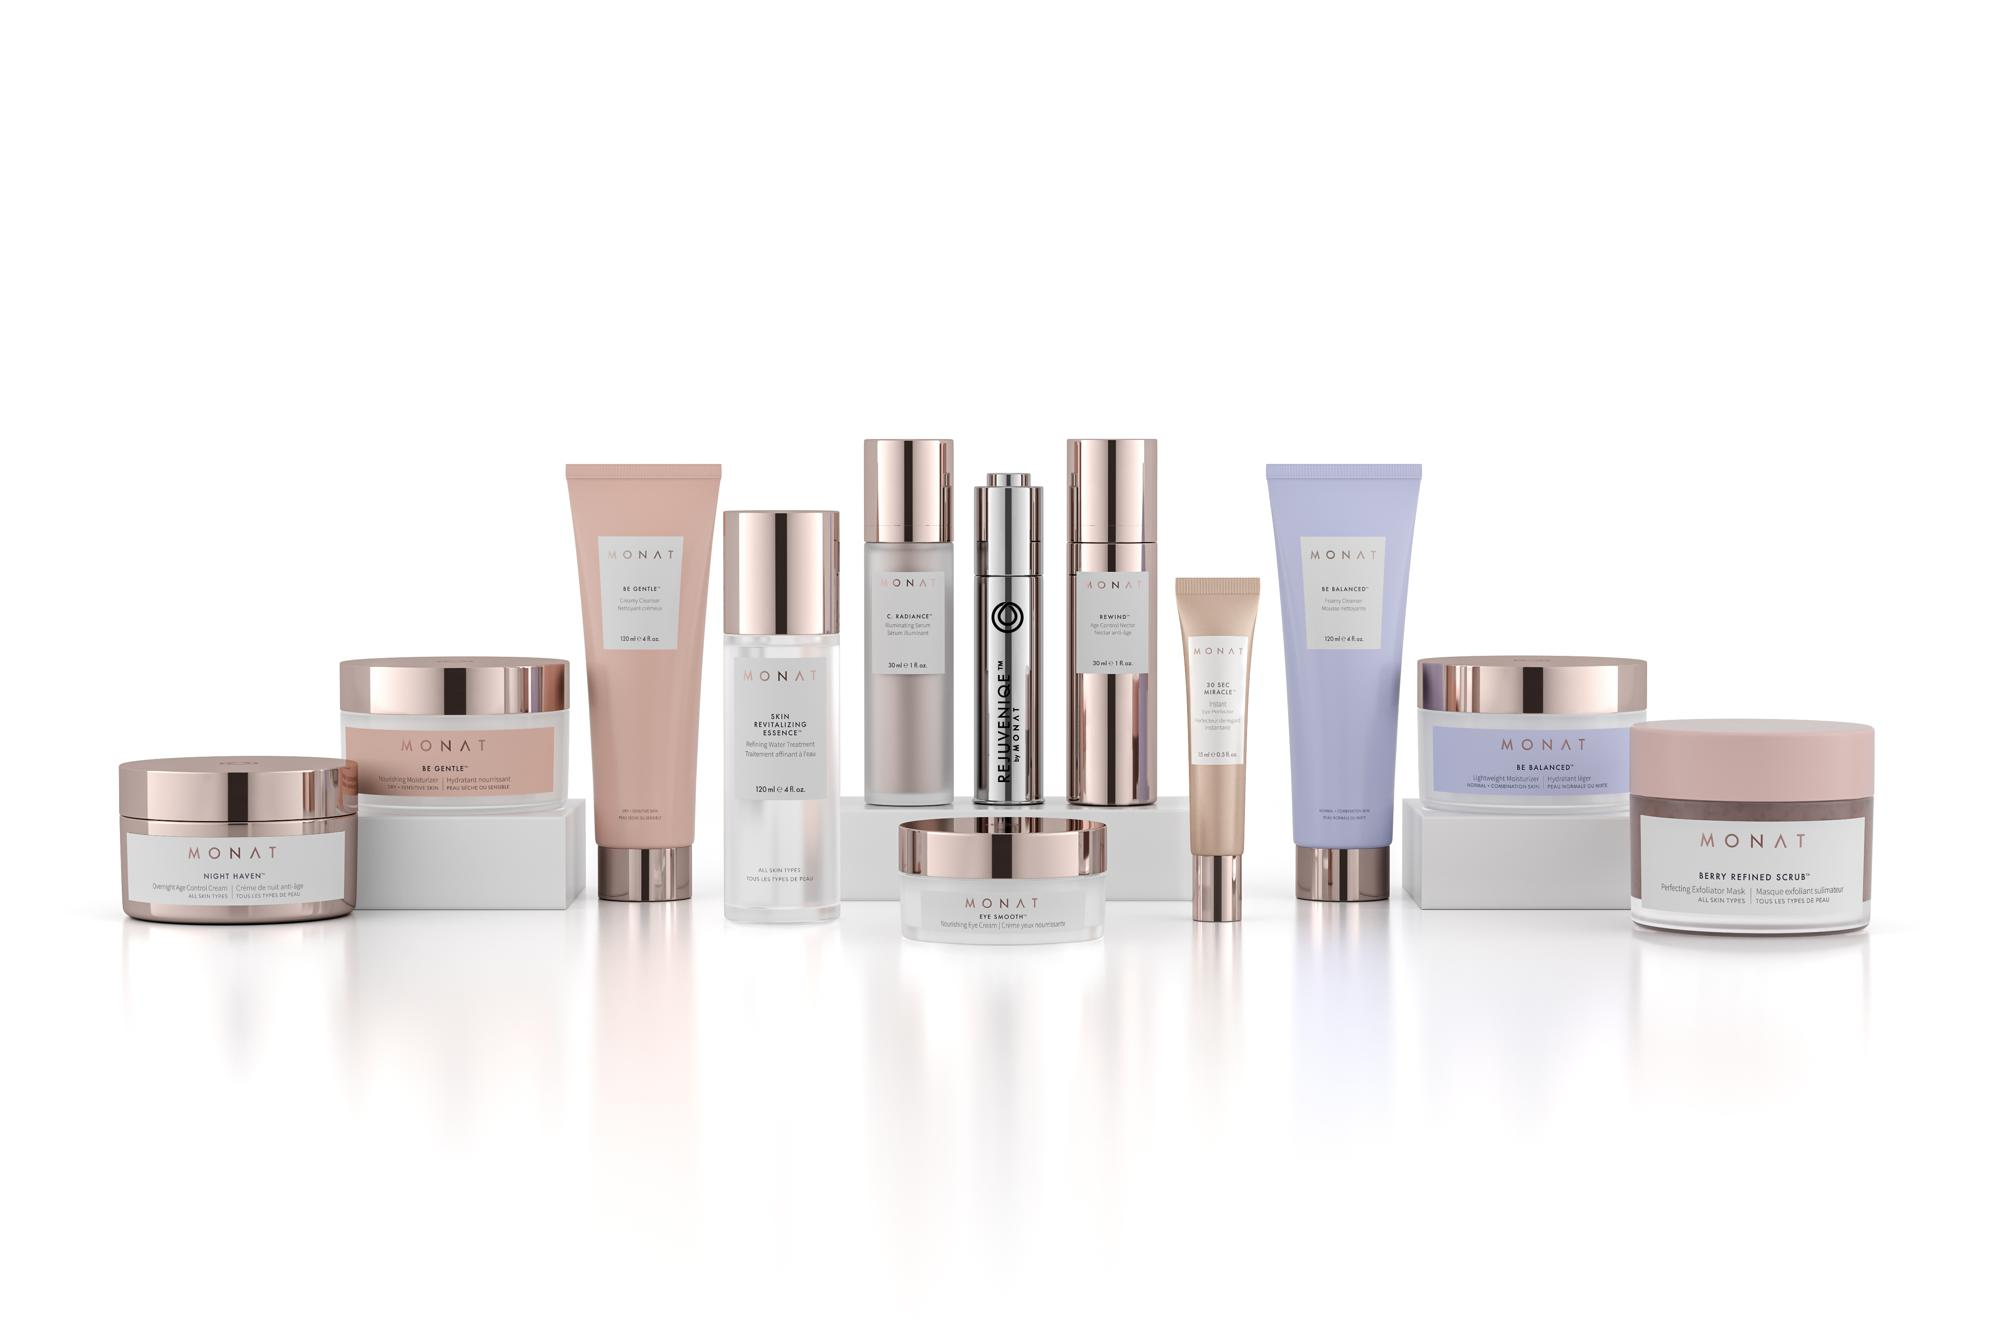 Monat Launches New Skincare Innovation By Popular Demand